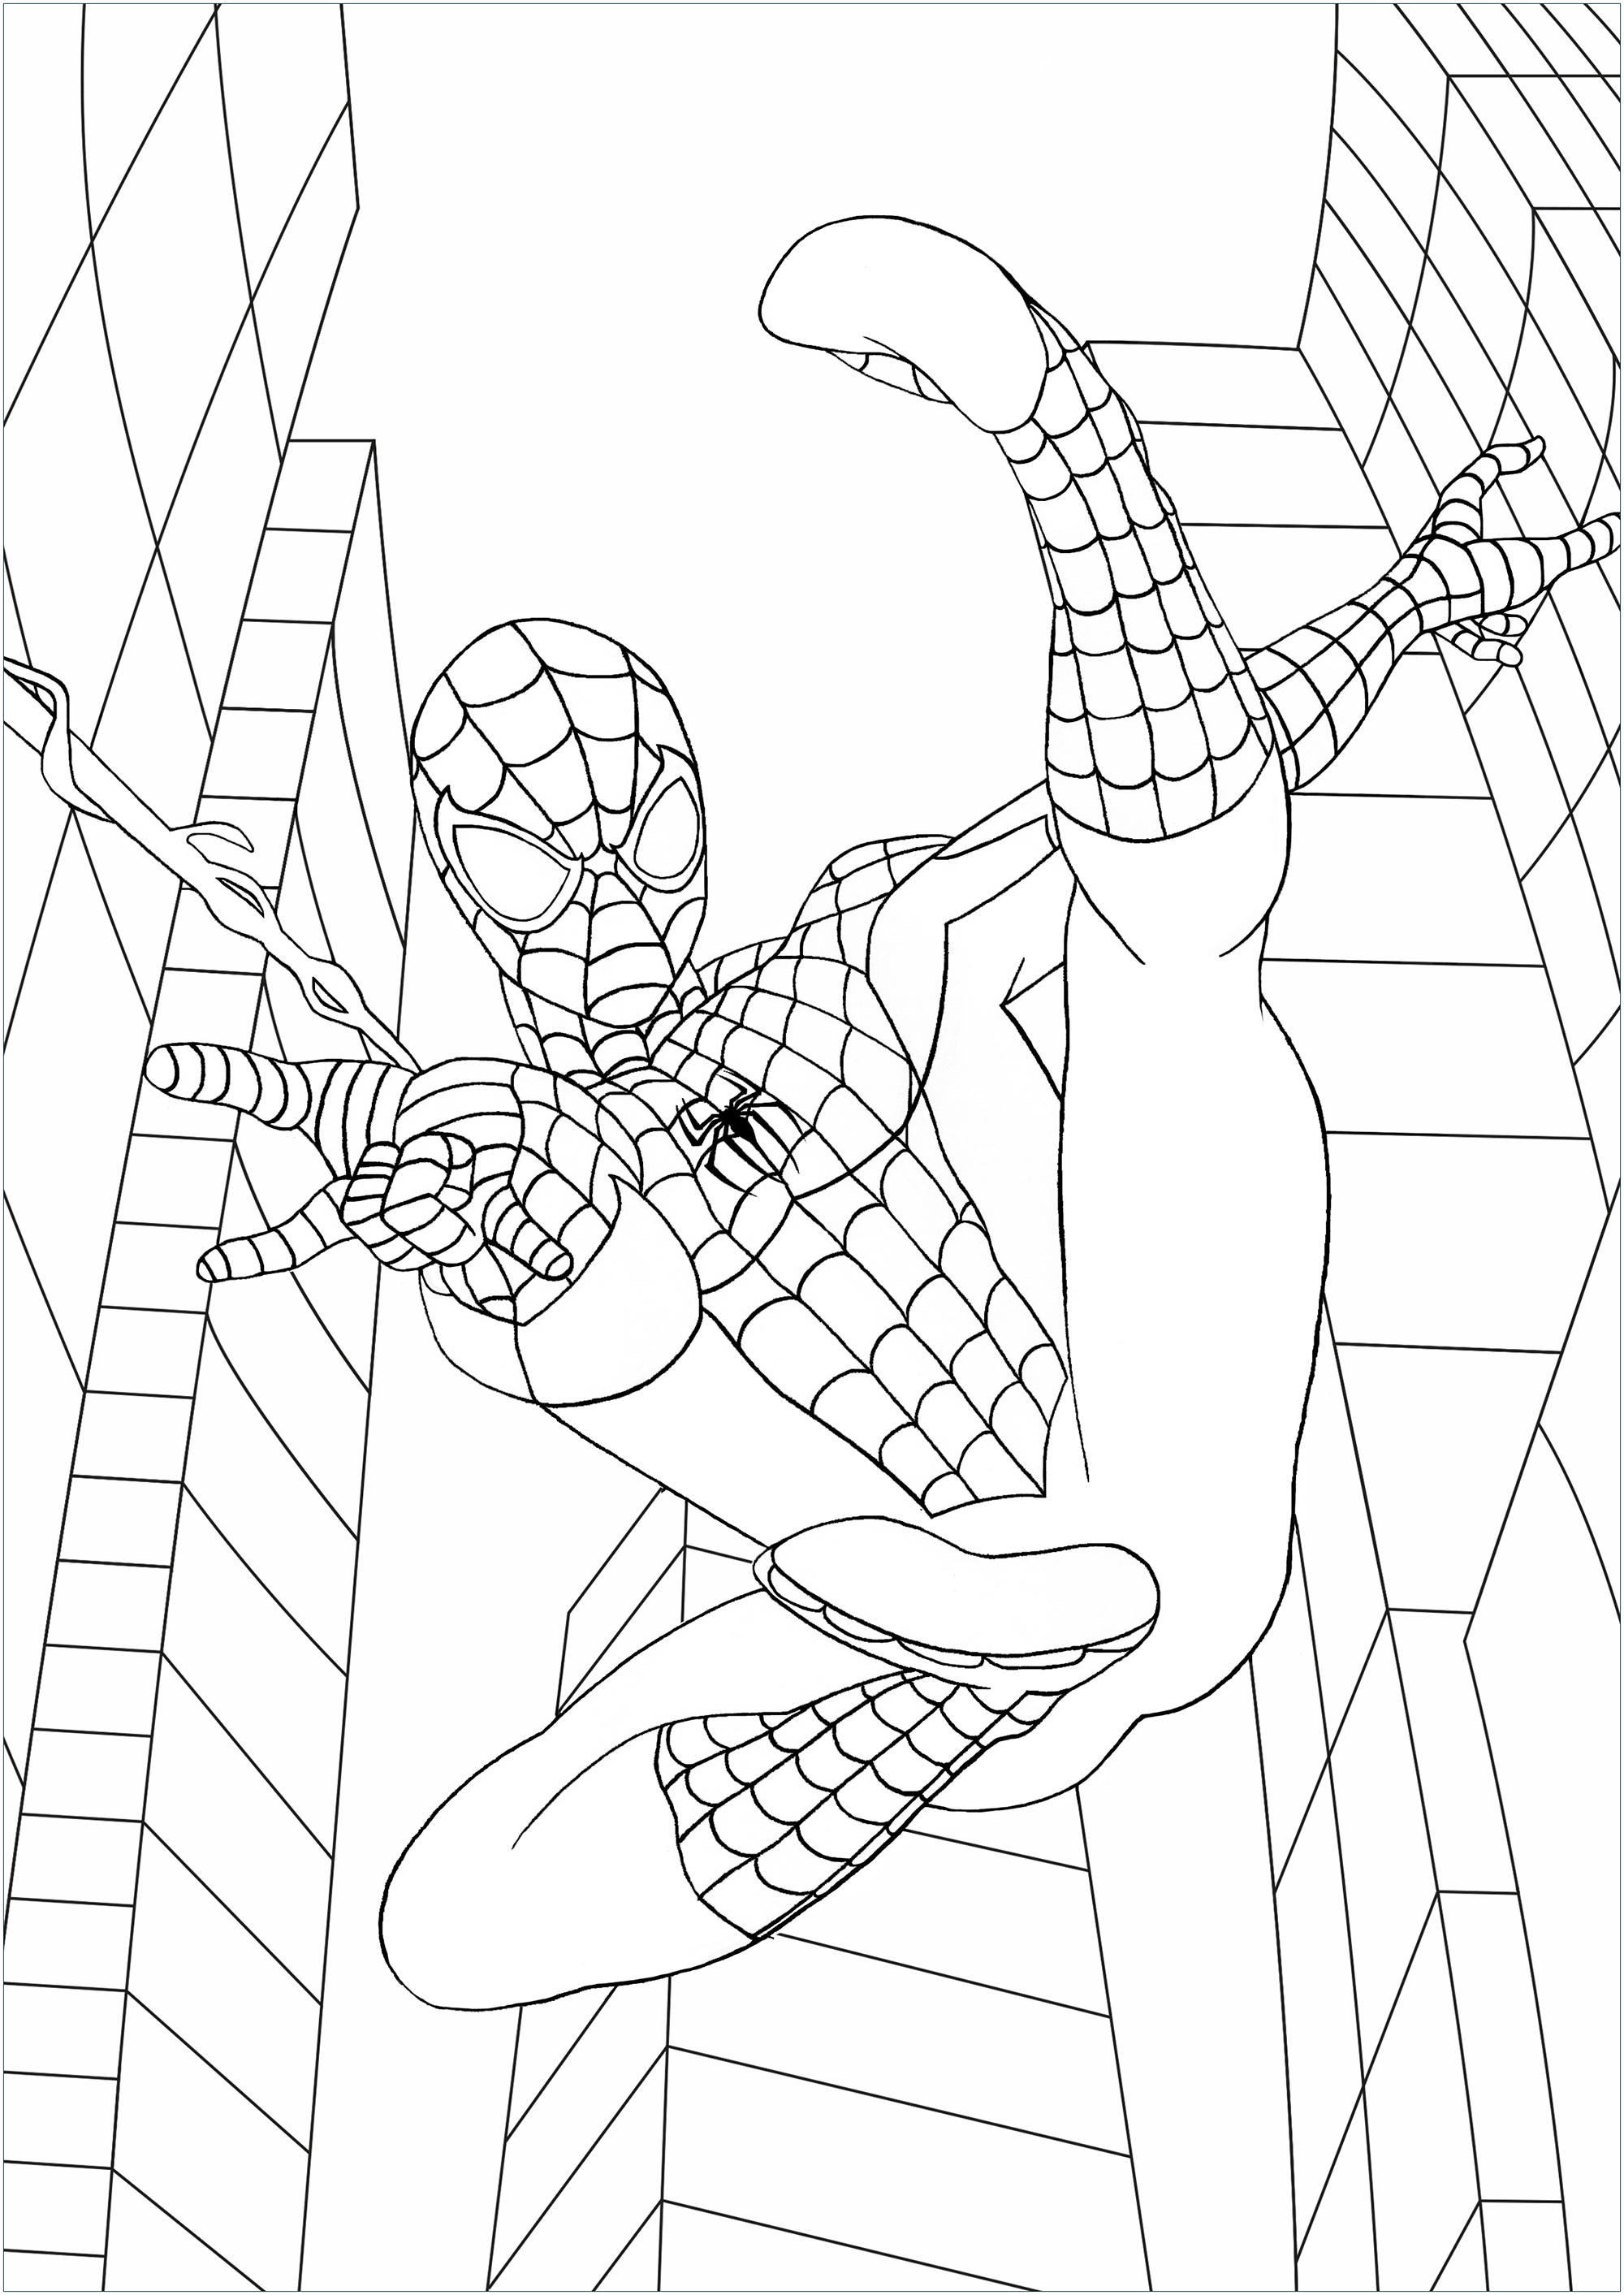 spiderman coloring pages easy spiderman simple drawing at getdrawings free download spiderman coloring easy pages